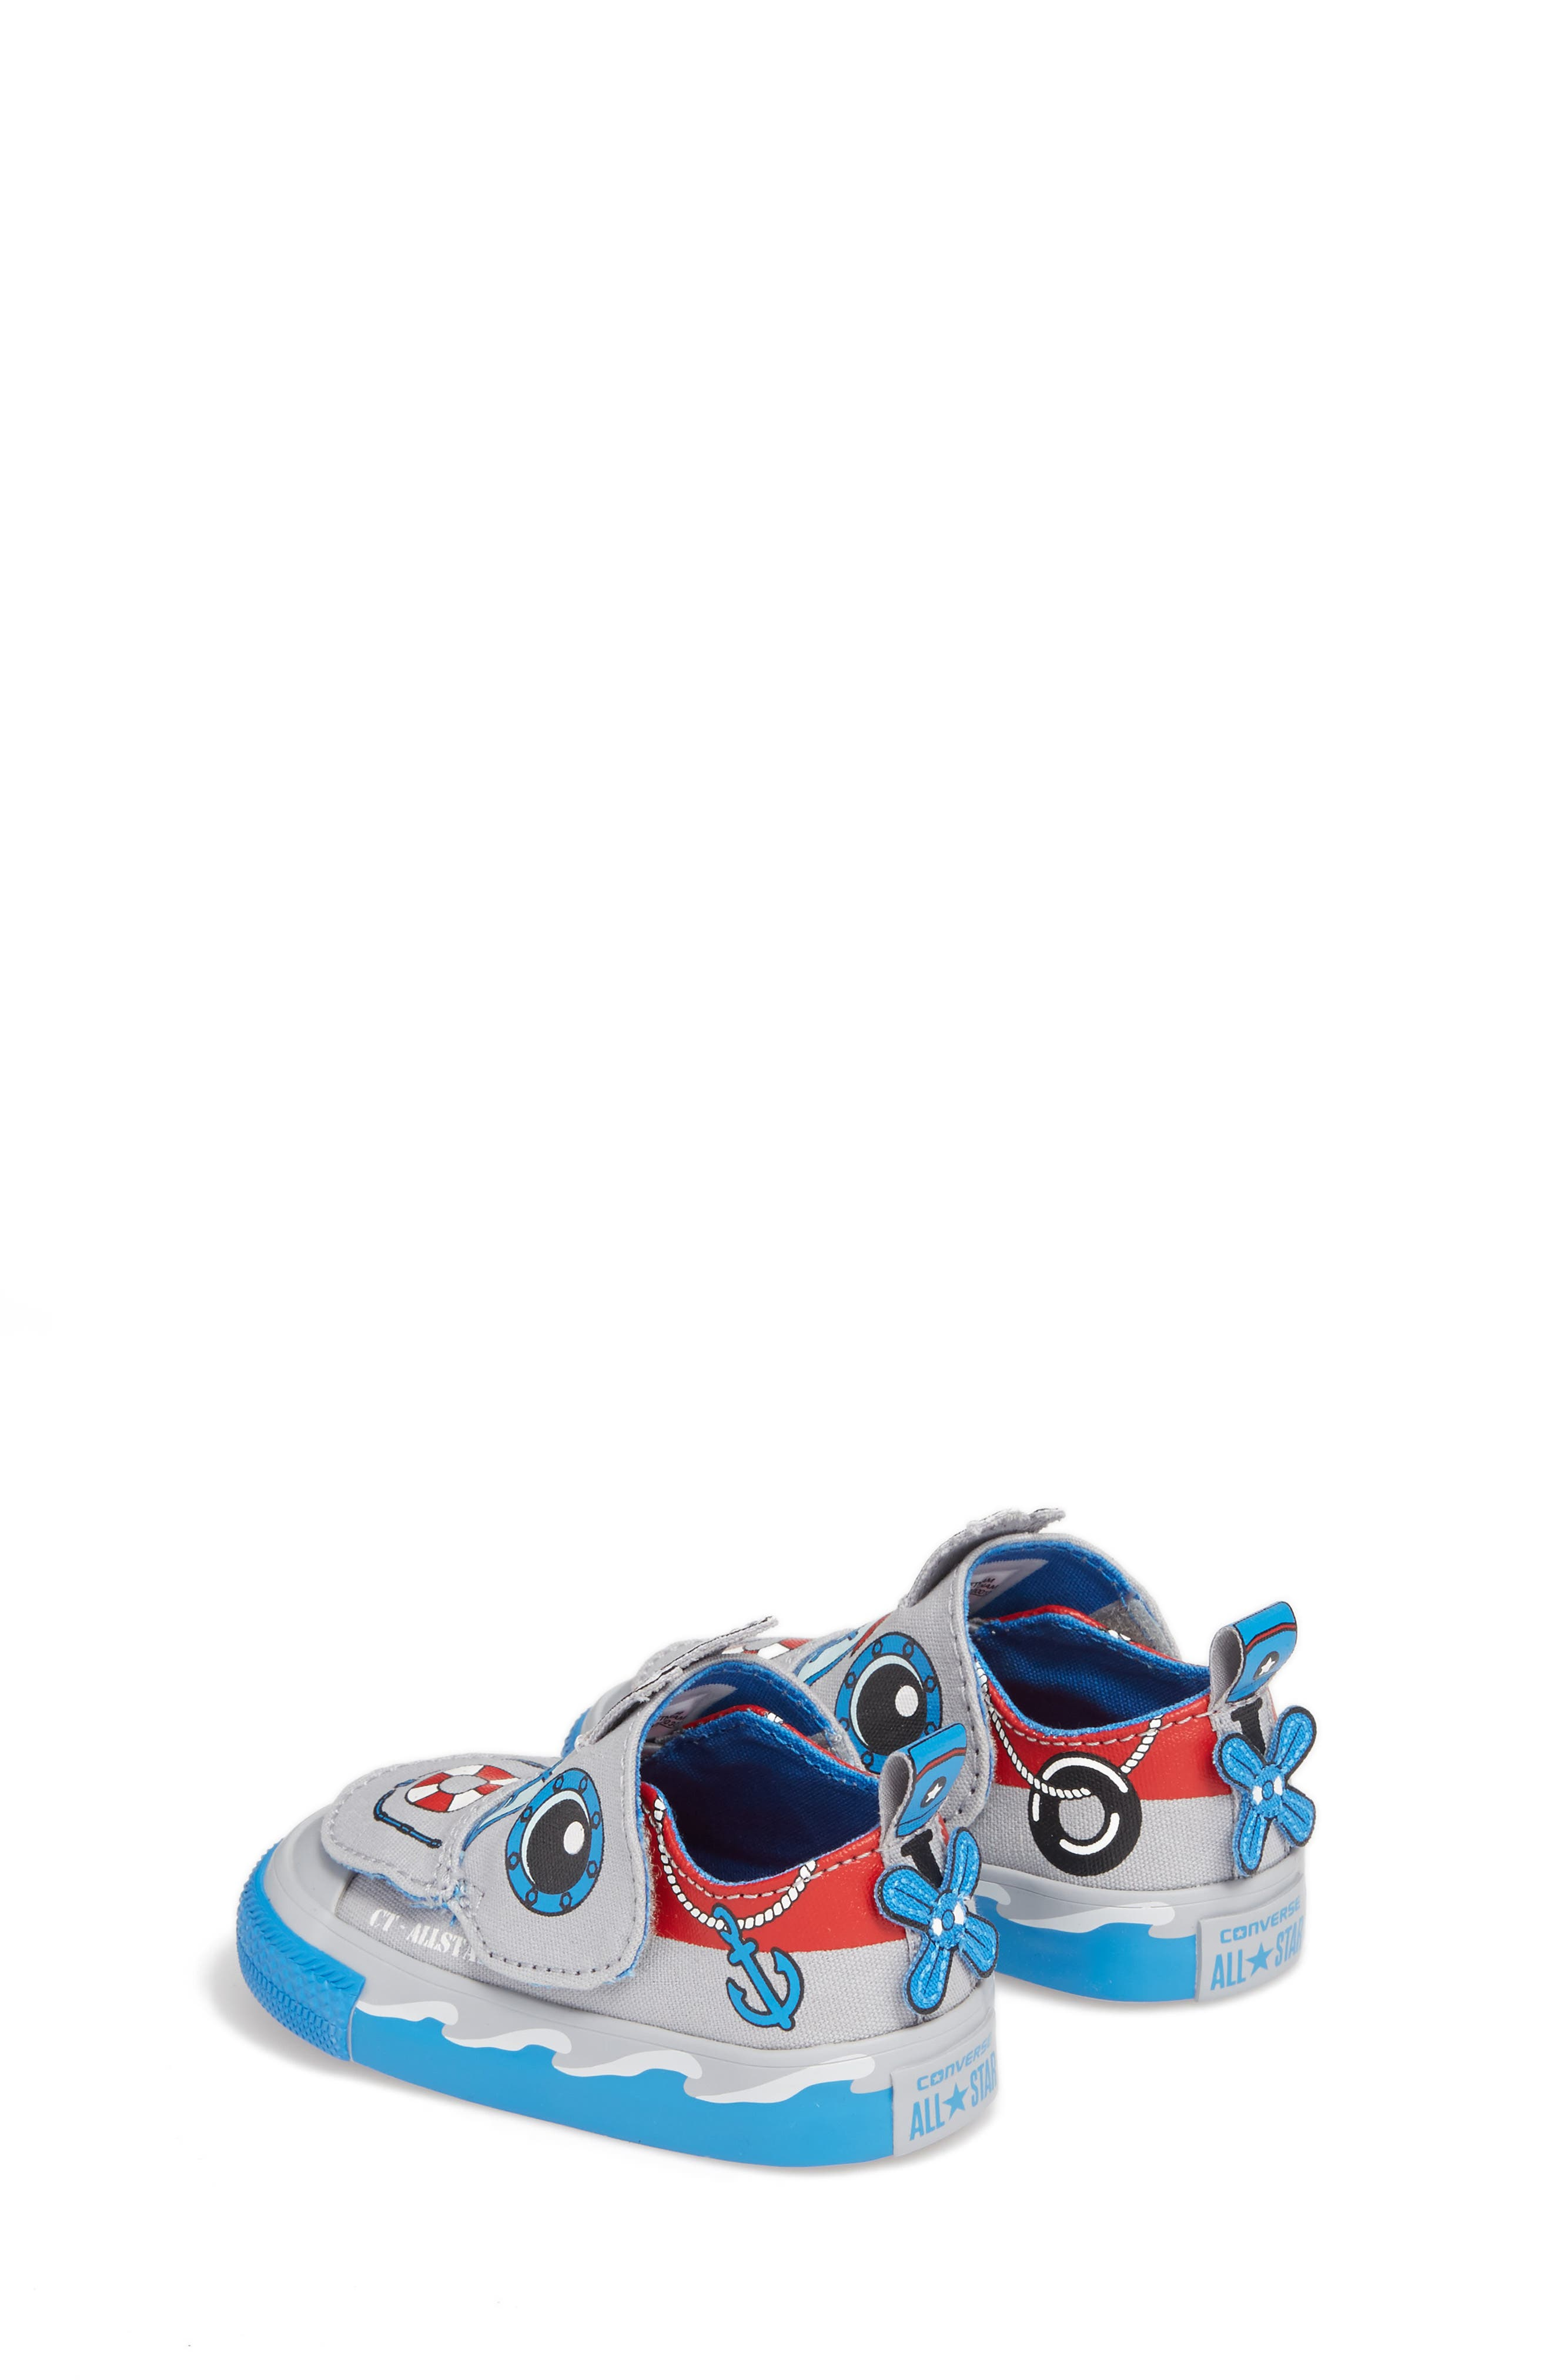 Chuck Taylor<sup>®</sup> All Star<sup>®</sup> Creatures Slip-On Sneaker,                             Alternate thumbnail 4, color,